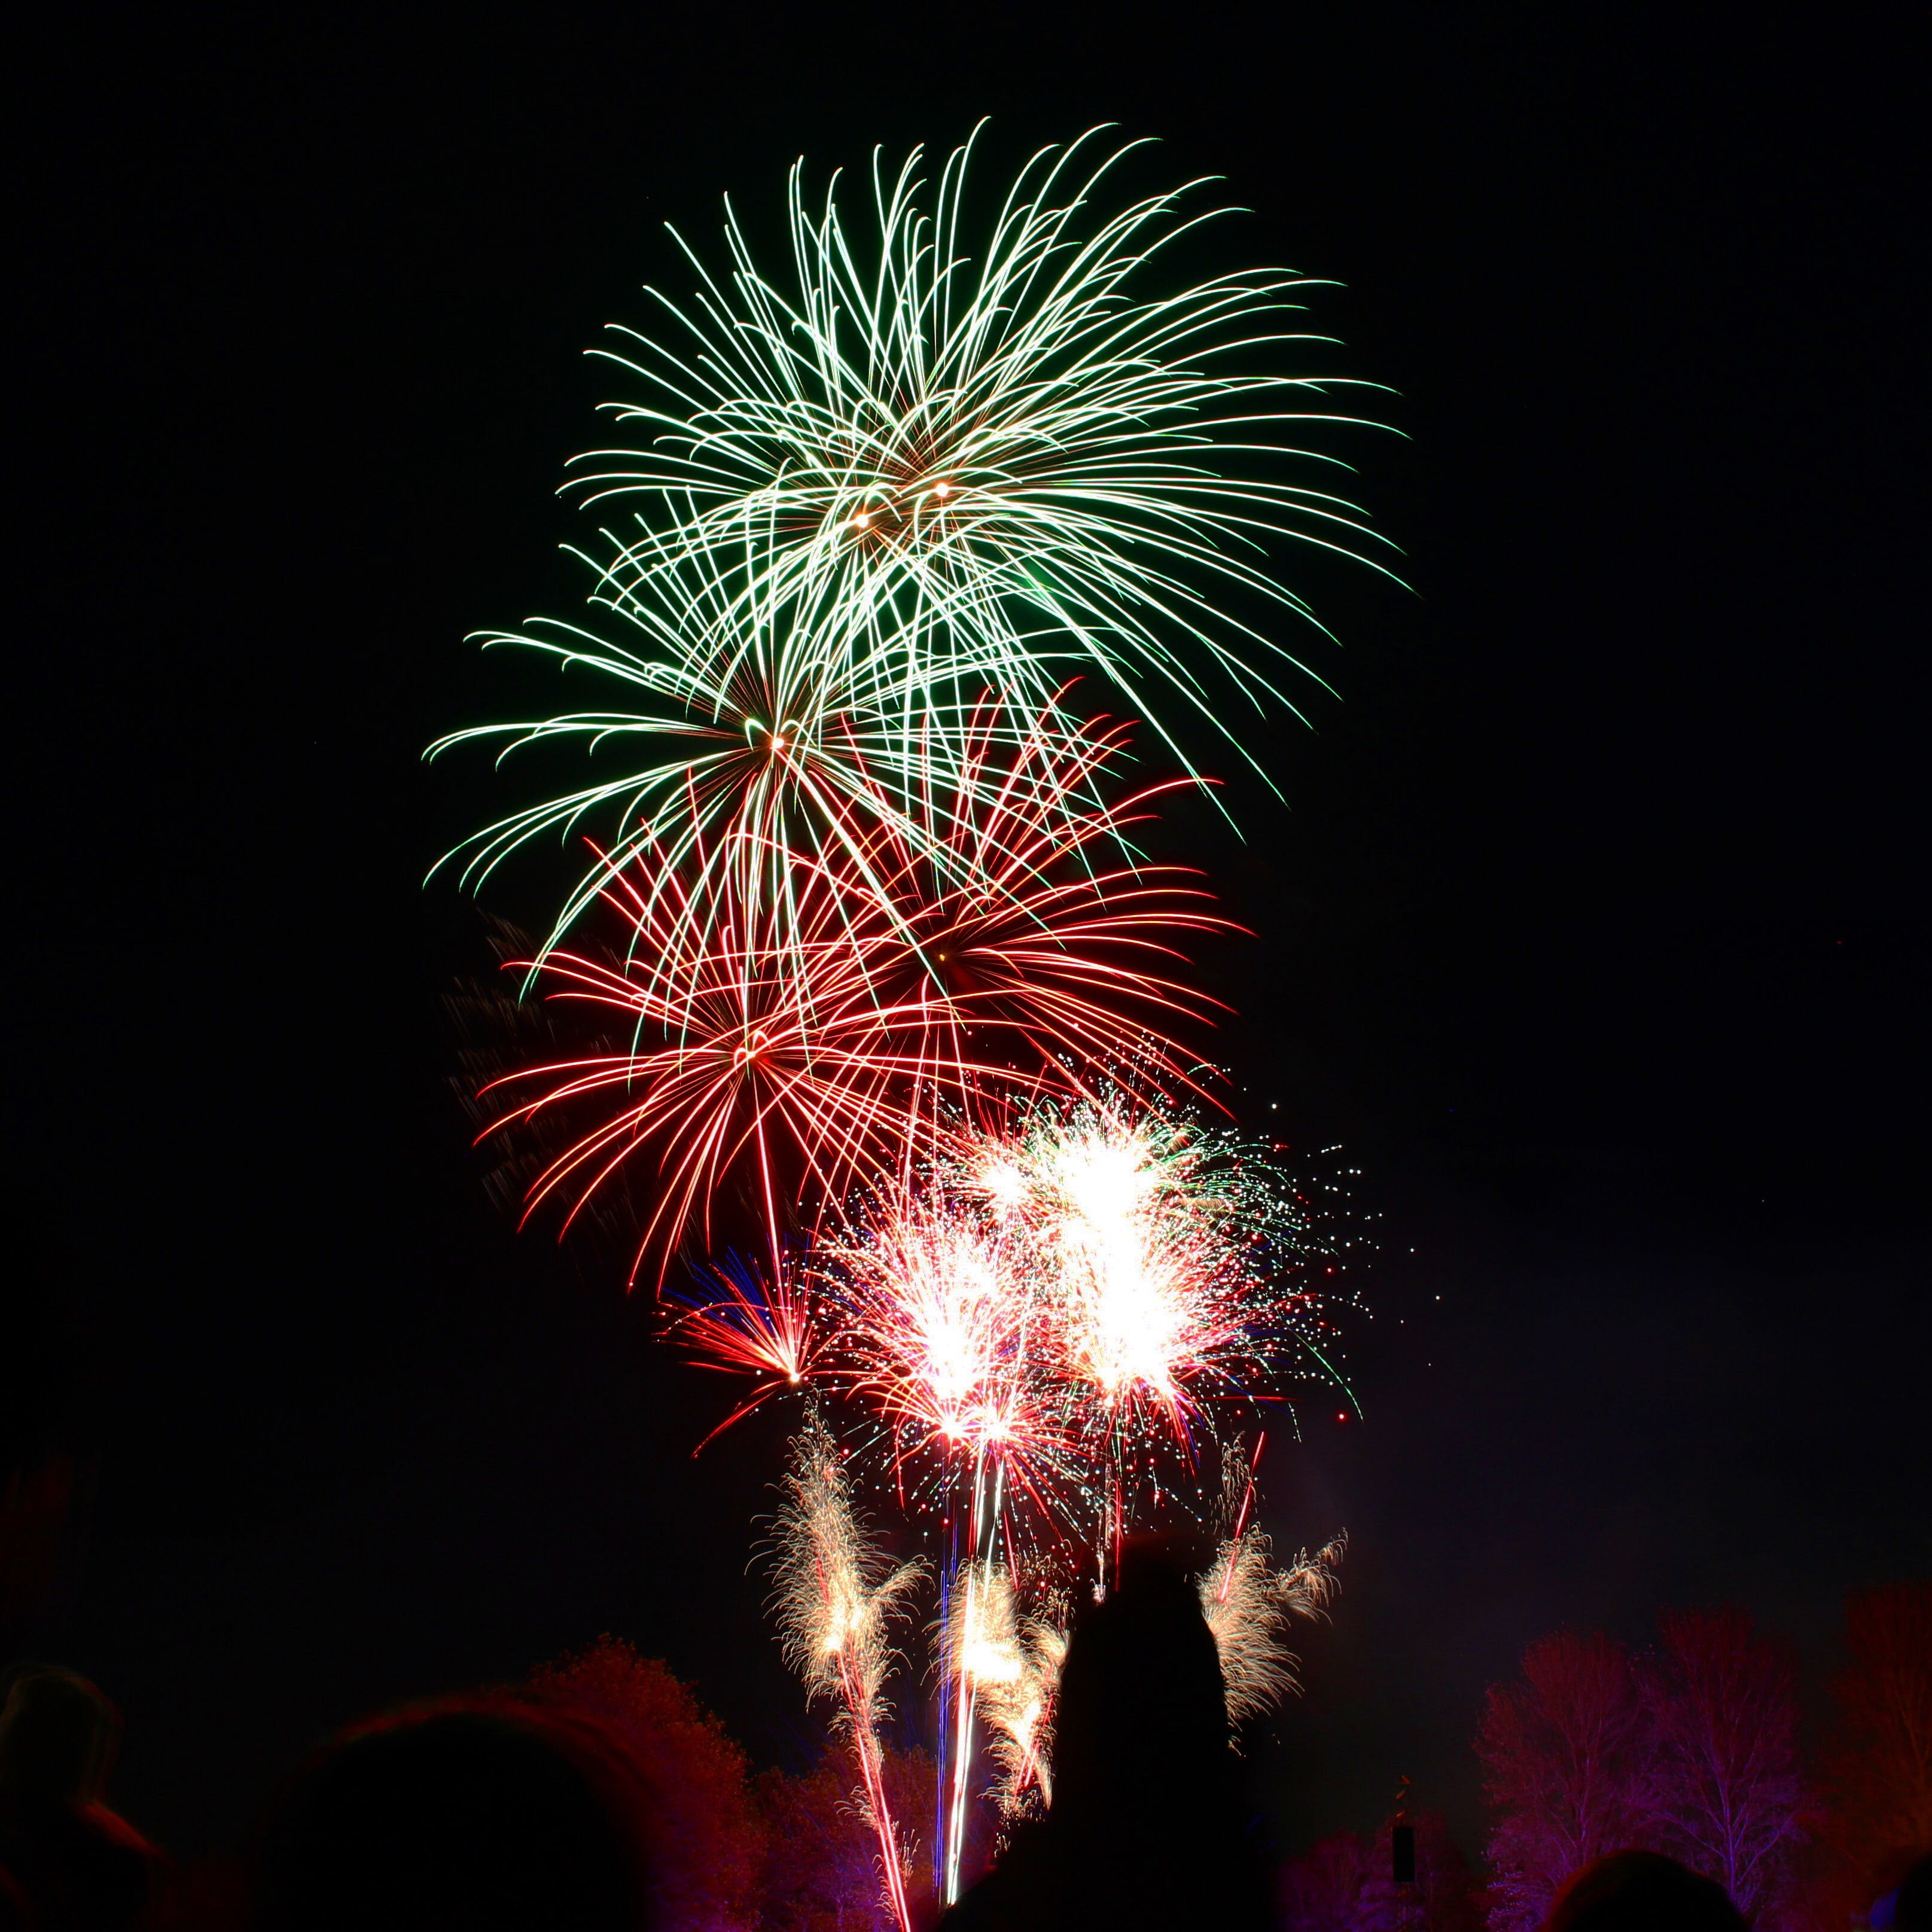 Photography of Green and Red Fire Works Display